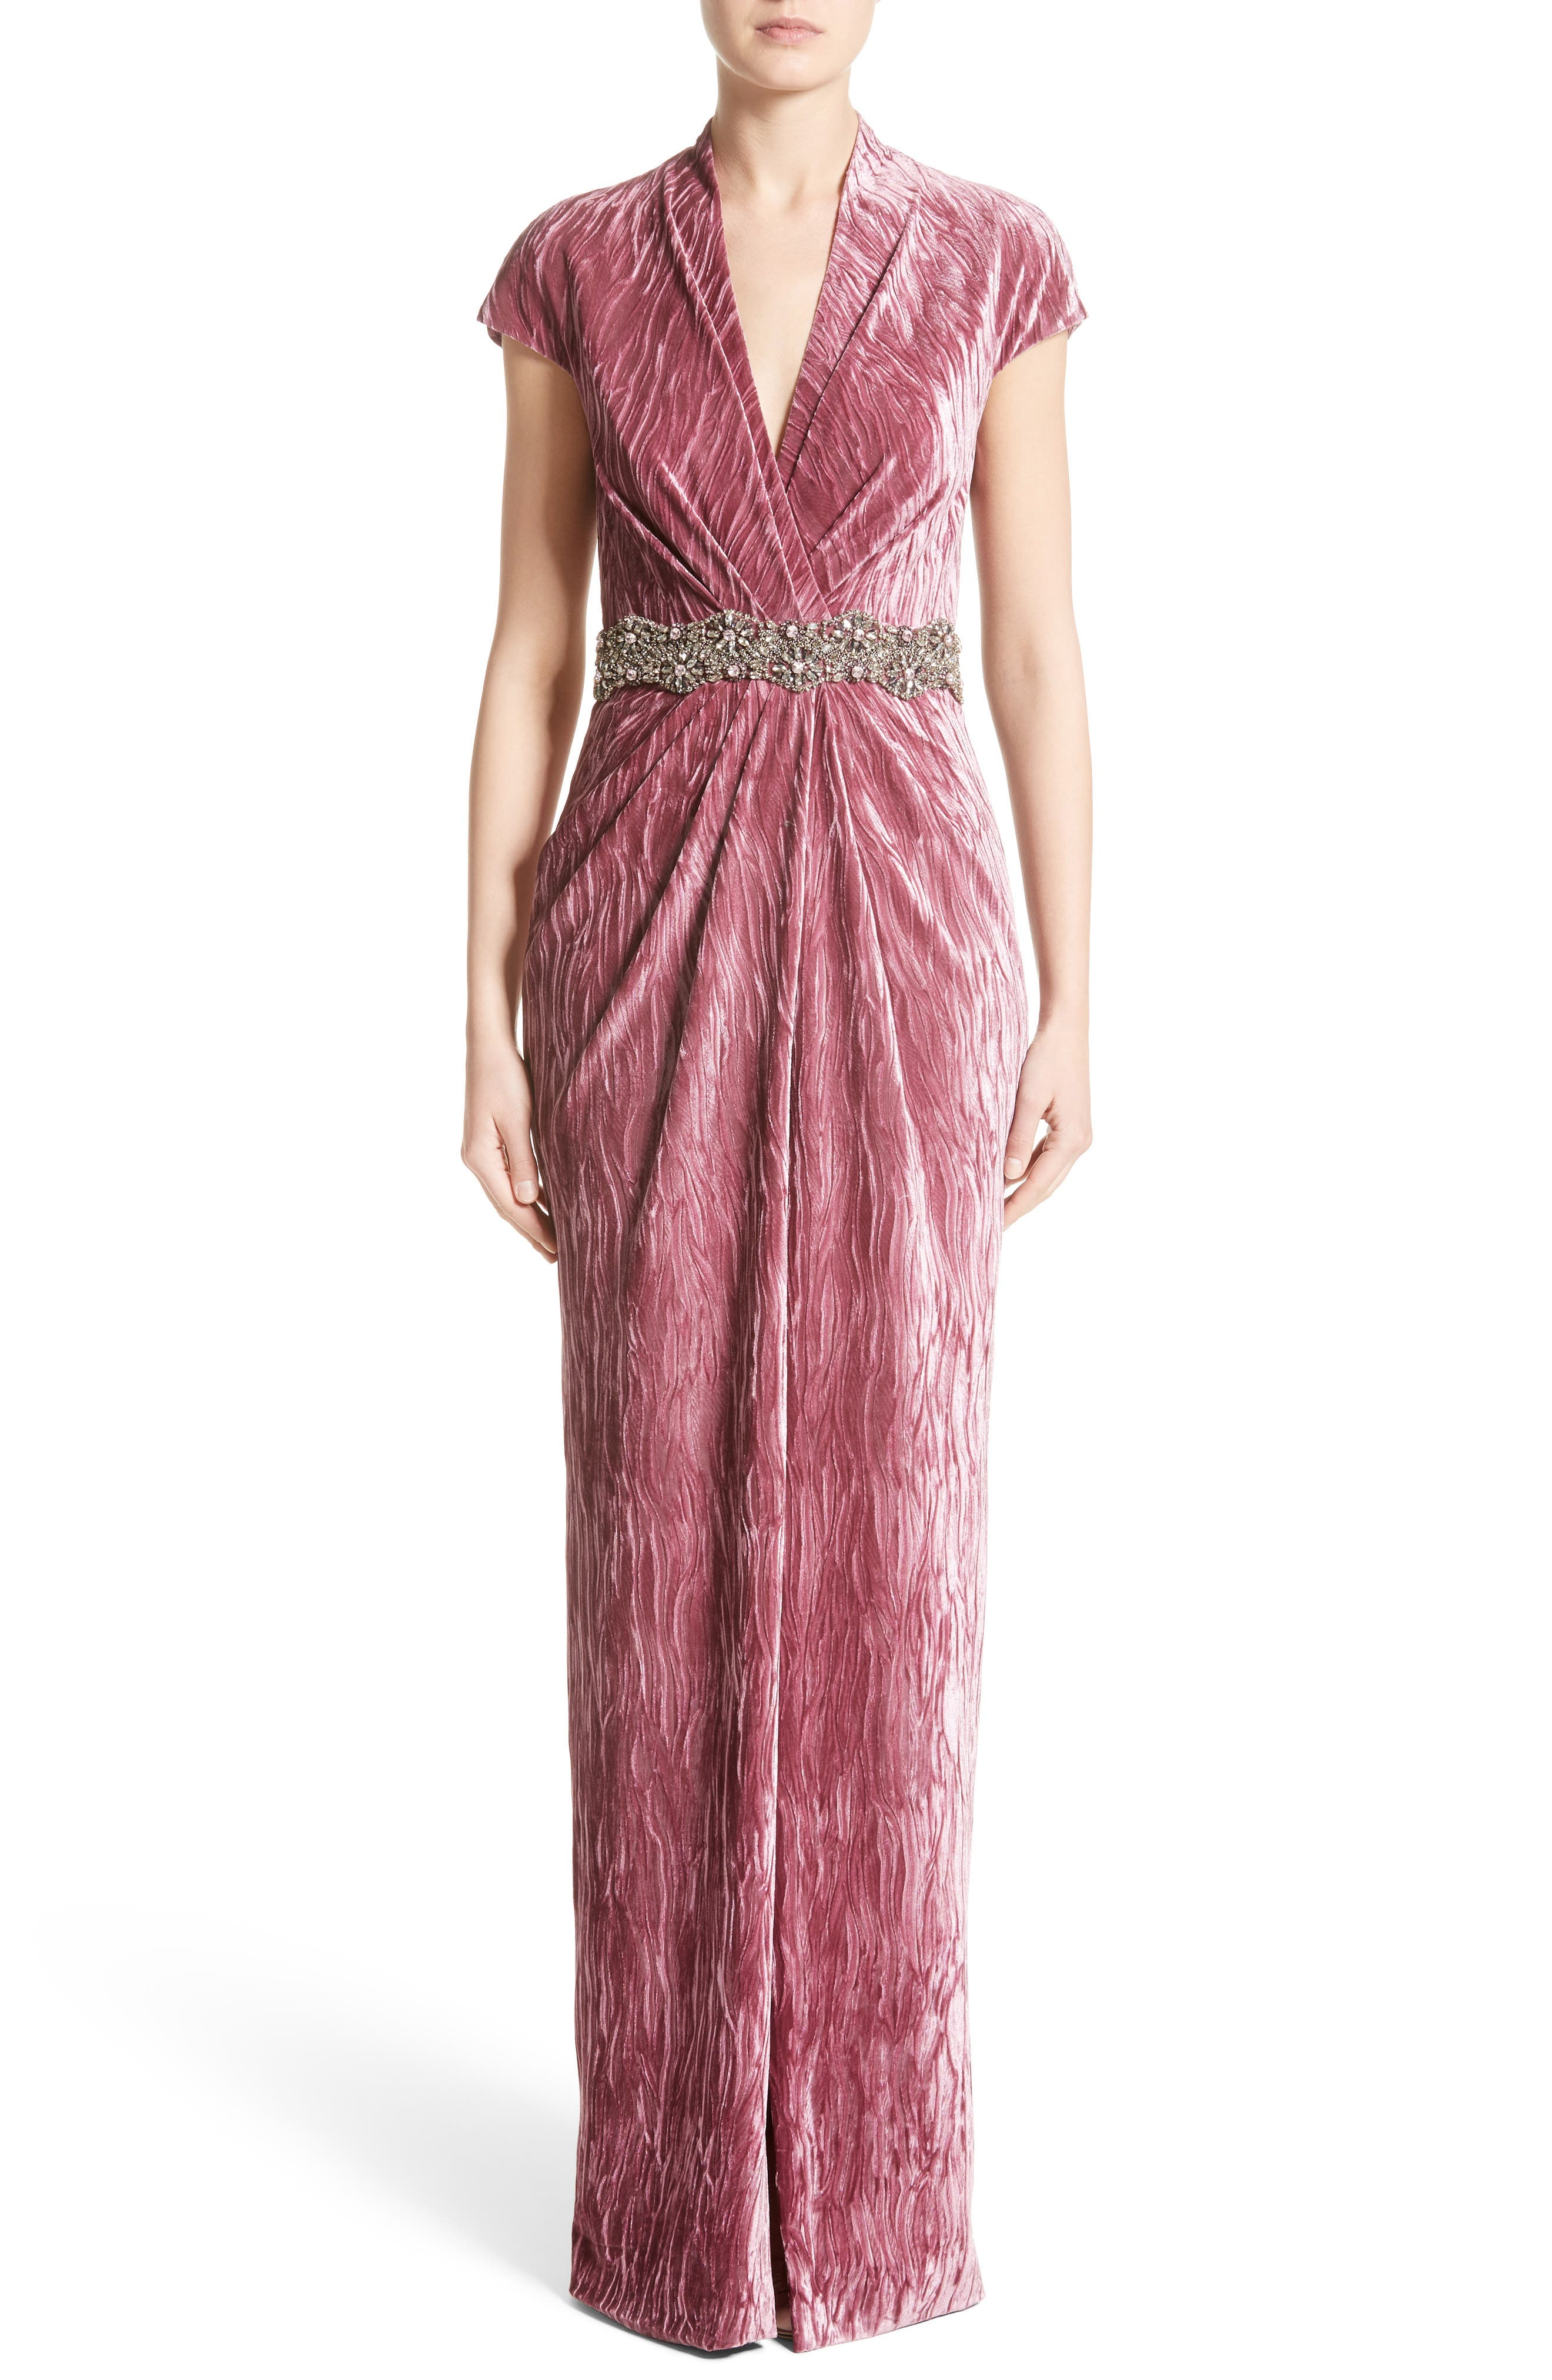 Main Image - Badgley Mischka Couture Beaded Belt Faux Wrap Gown (Nordstrom Exclusive)